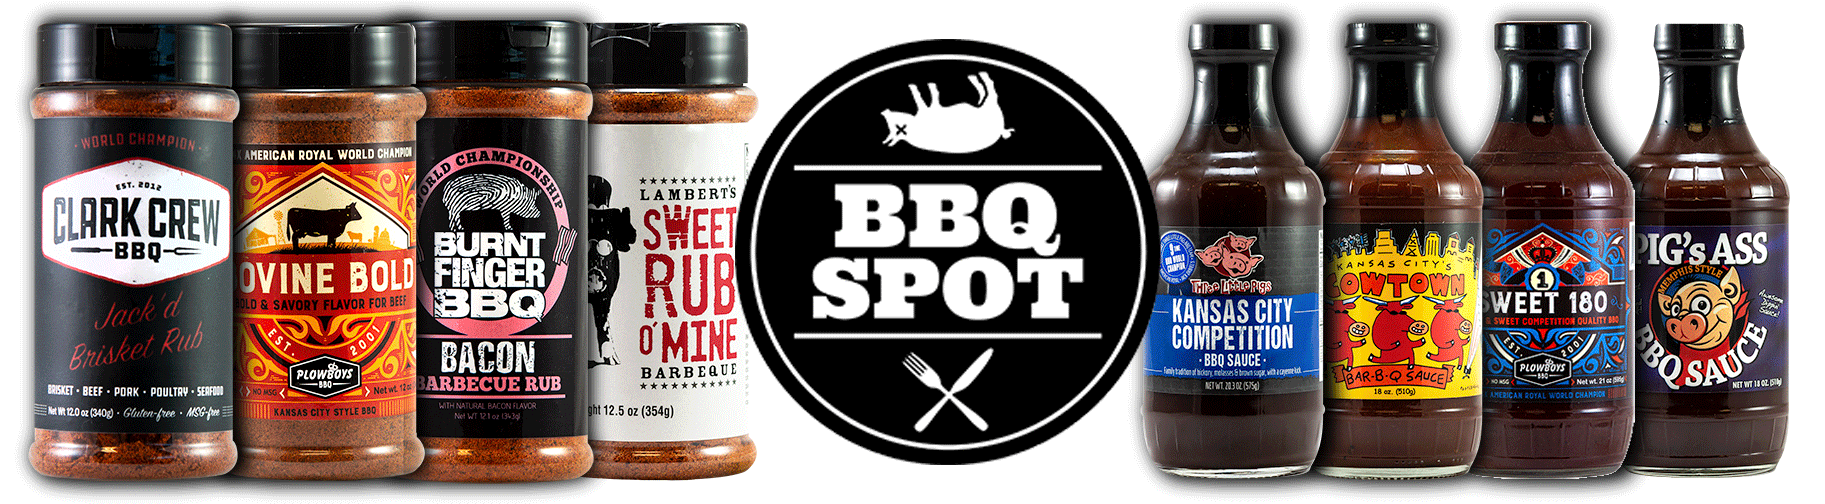 OUR TOP 10 BEST SELLING BBQ RUBS FOR AWARD-WINNING FLAVOR